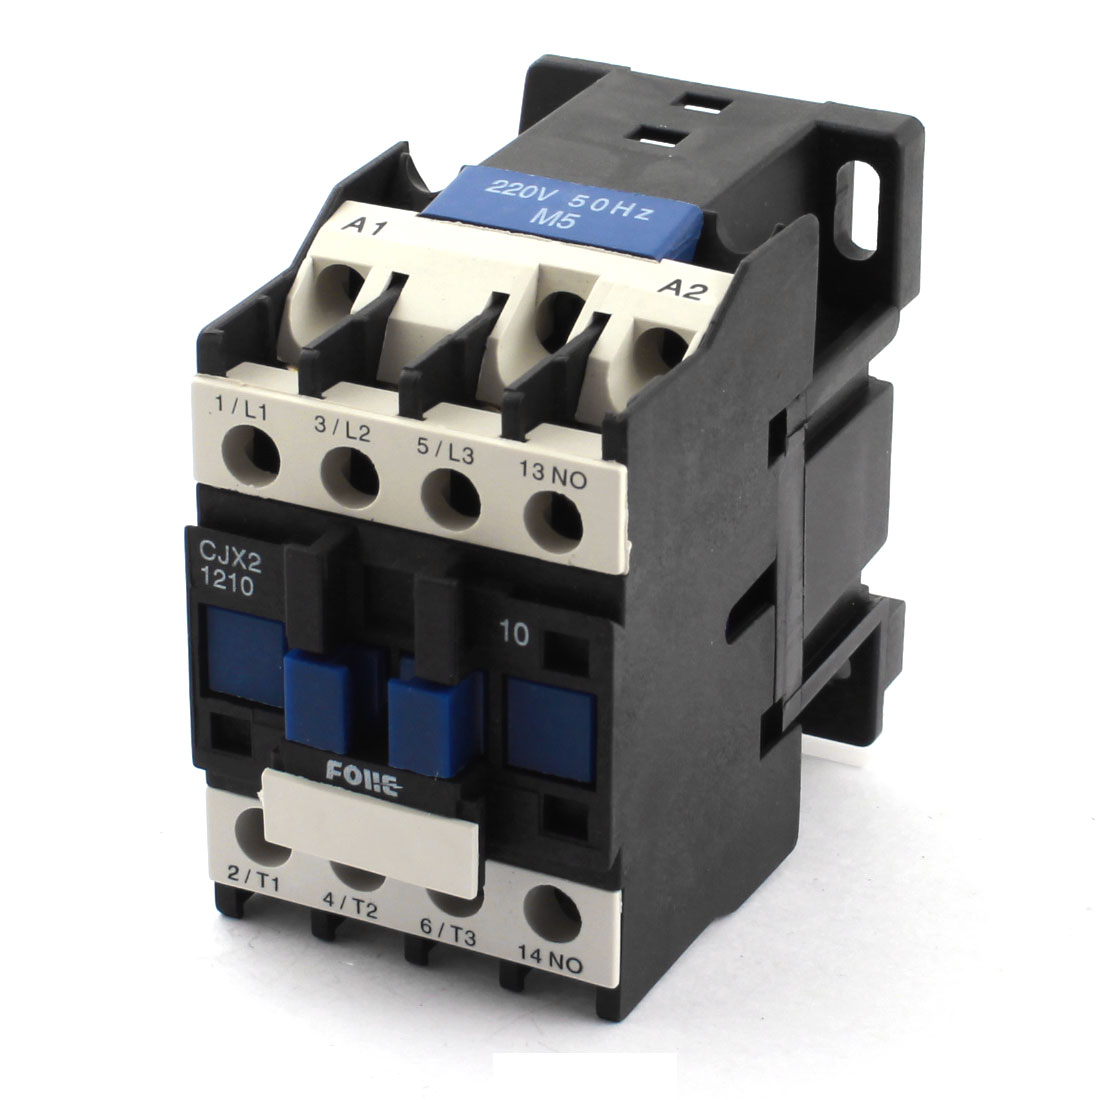 CJX2-1210 AC220V 12A 35mm DIN Rail Mounting 11 Screw Terminals 3-Phase Power Contactor